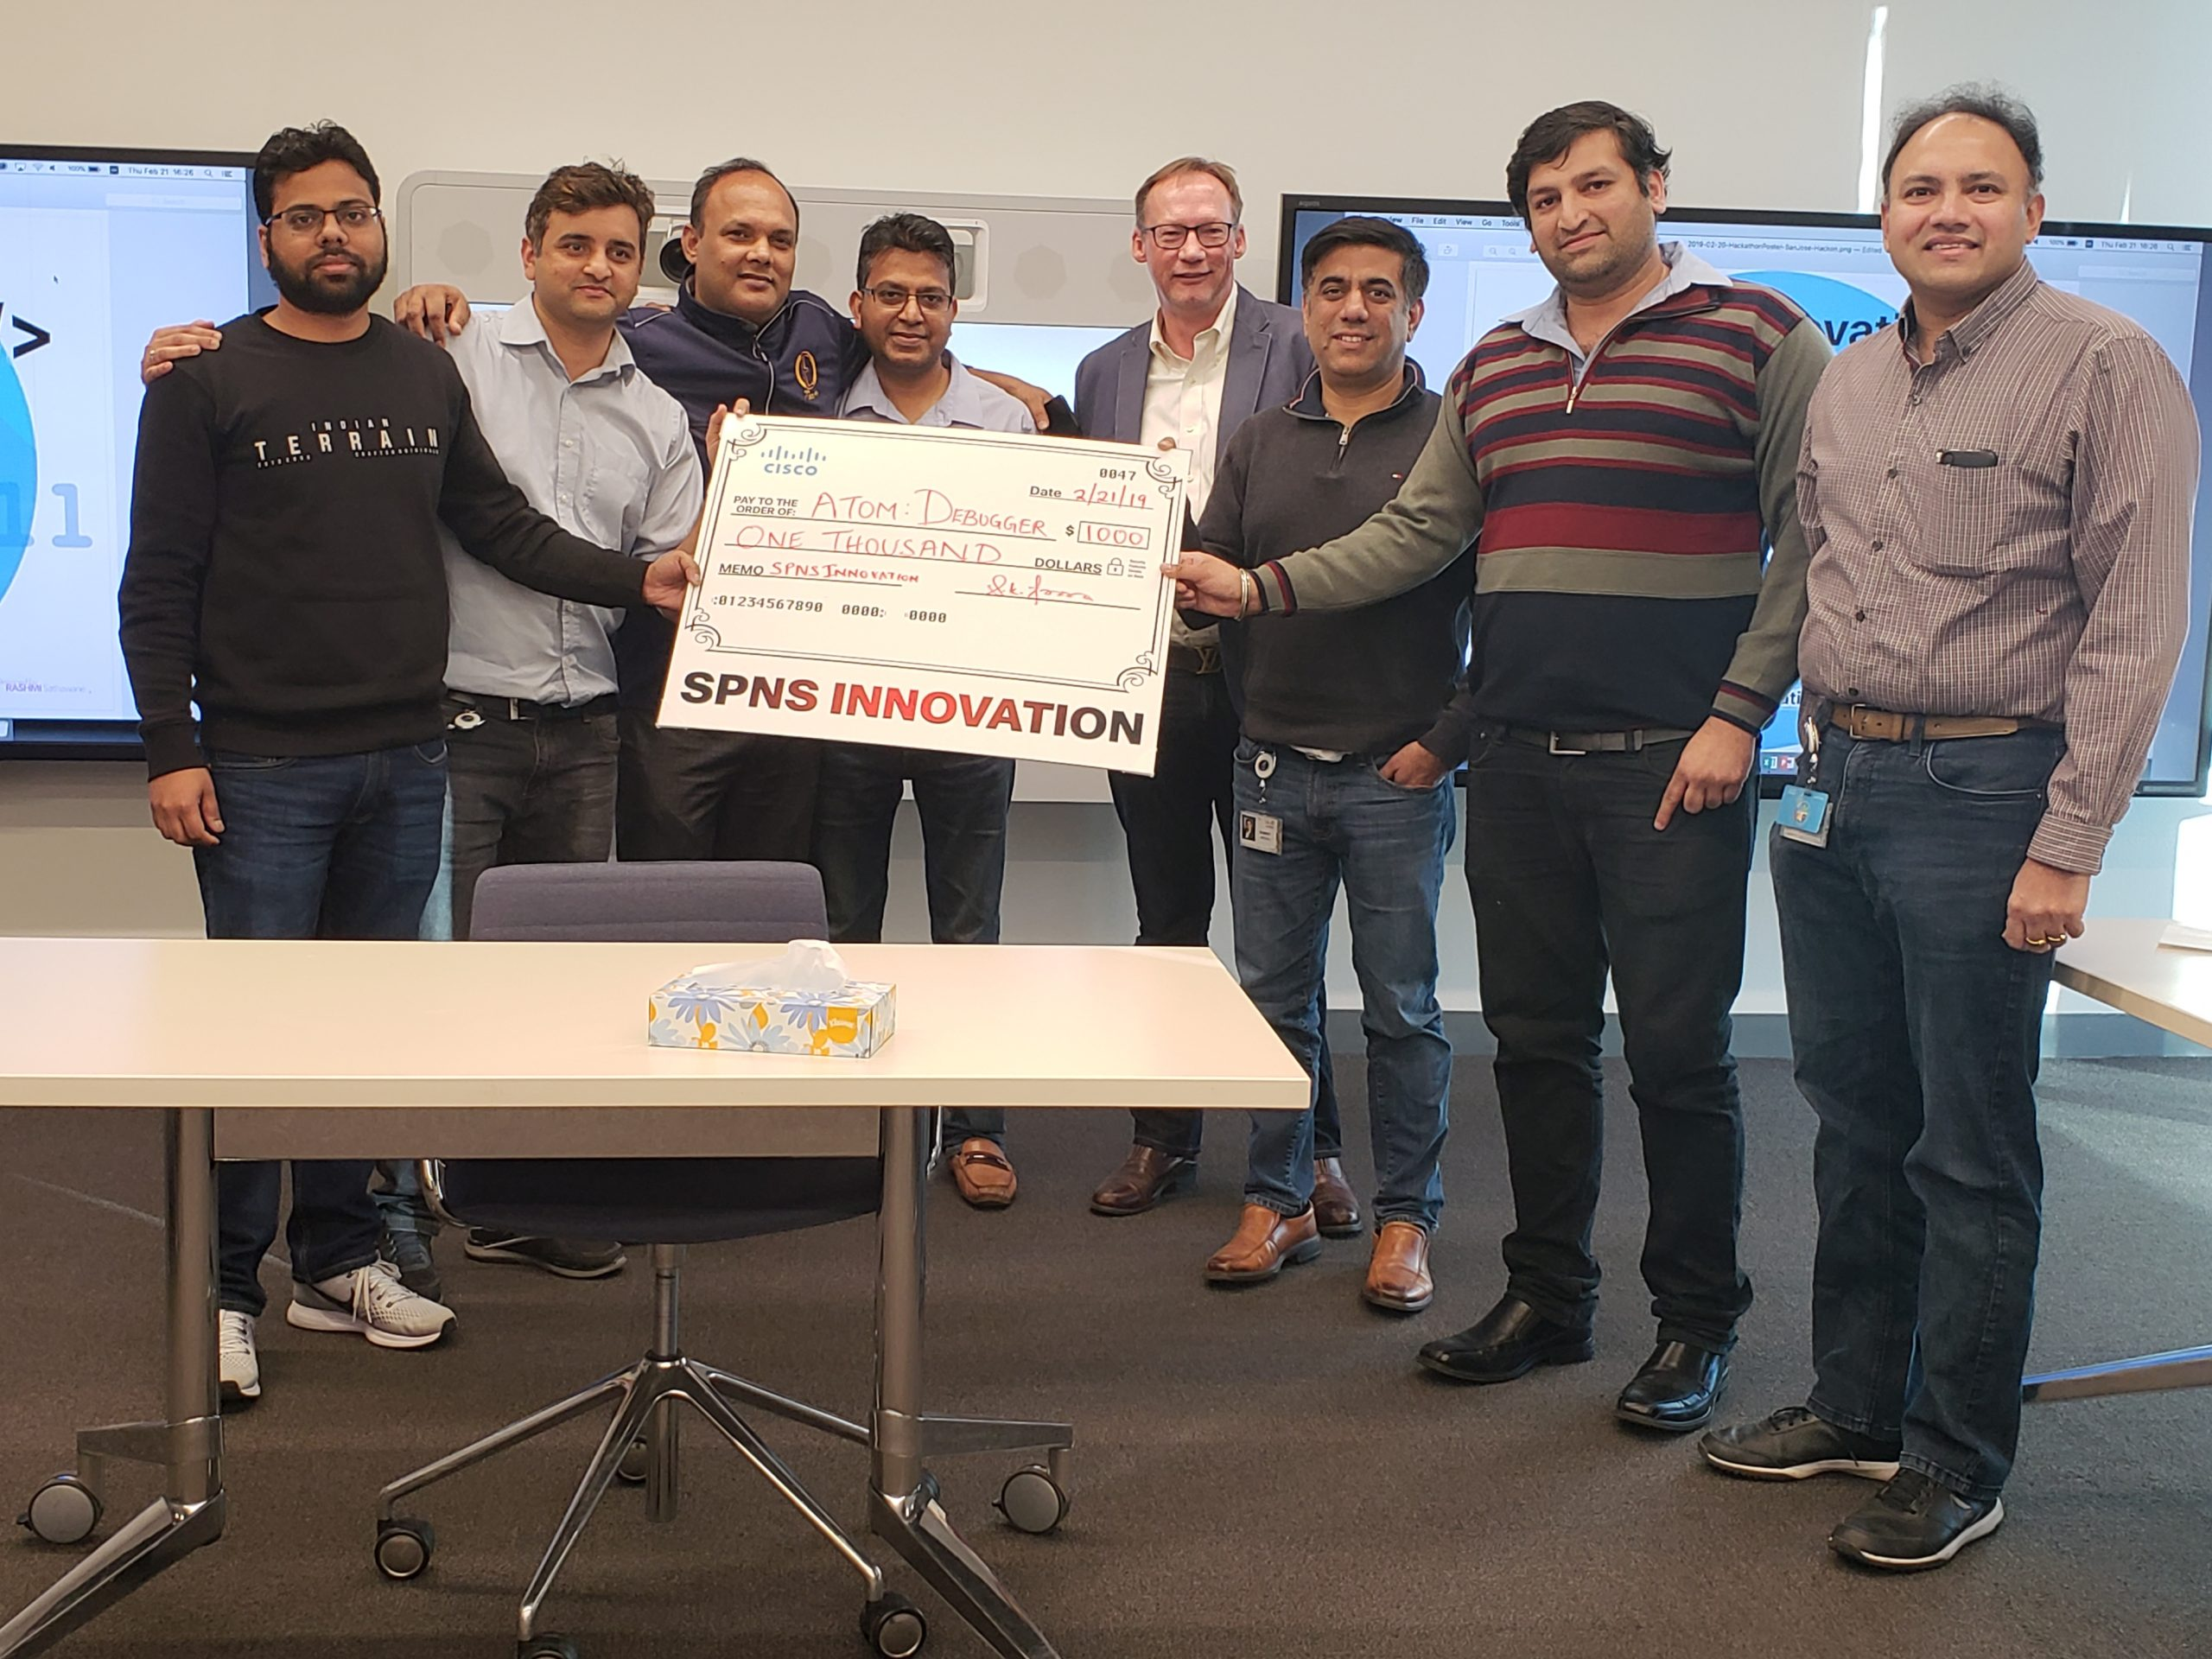 A group of Rashmi's friends and colleagues holding a large check with the words SPNS INNOVATION across the bottom.